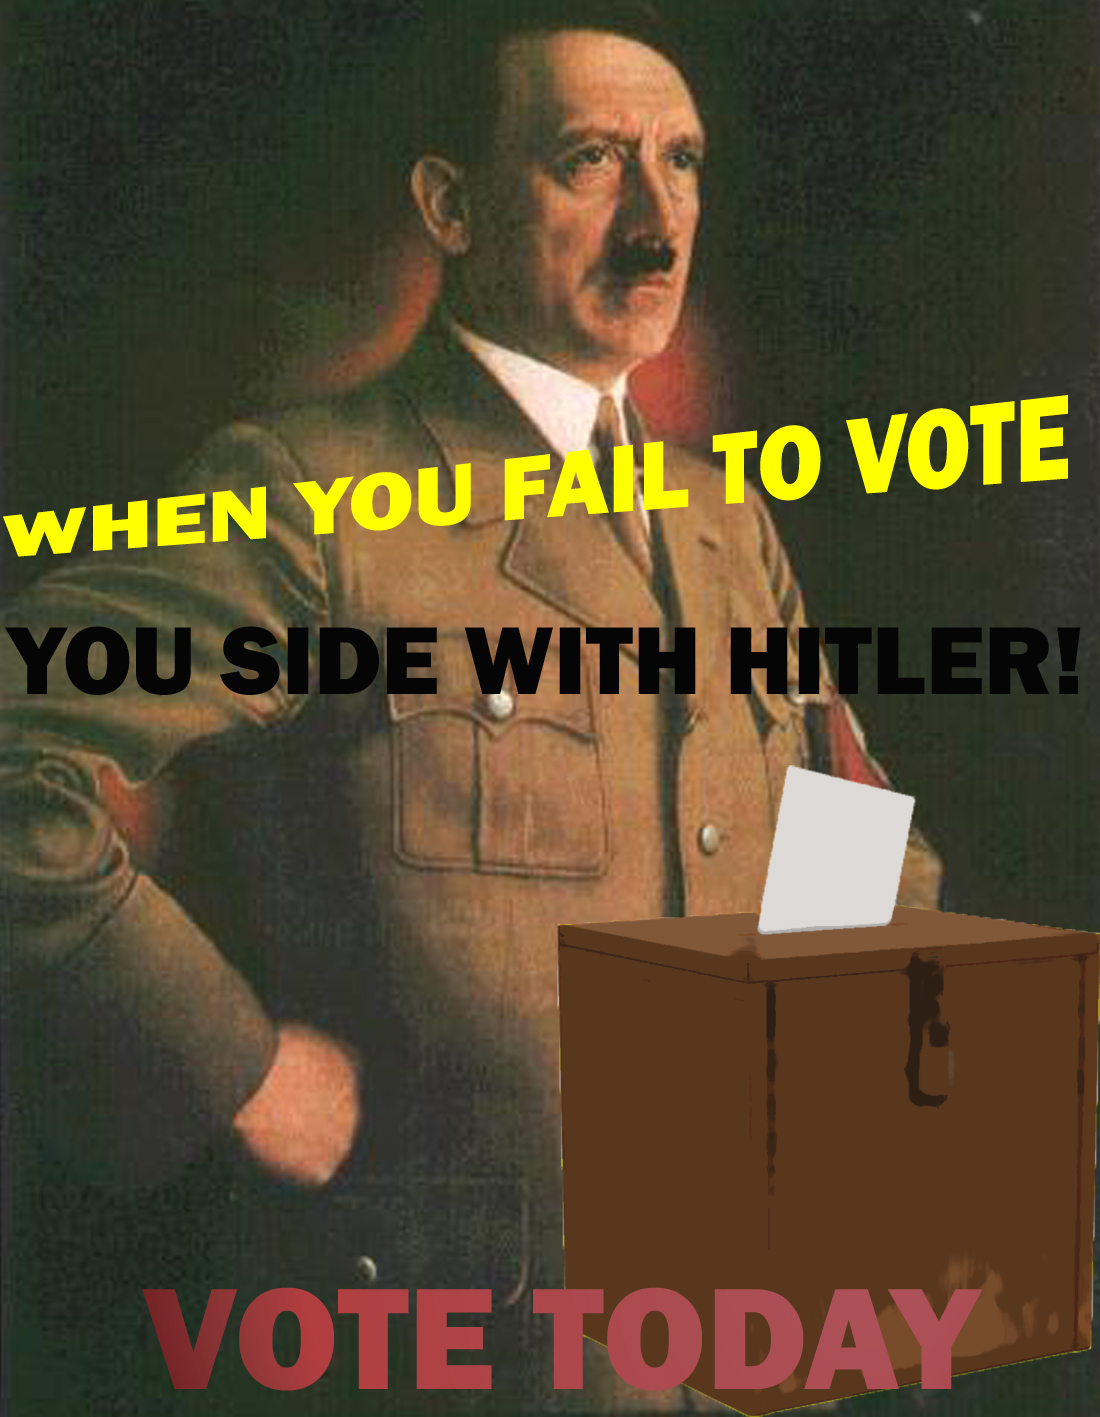 A World War II (Two, 2) style propaganda poster urging people to vote, features Adolf Hitler and a ballot box